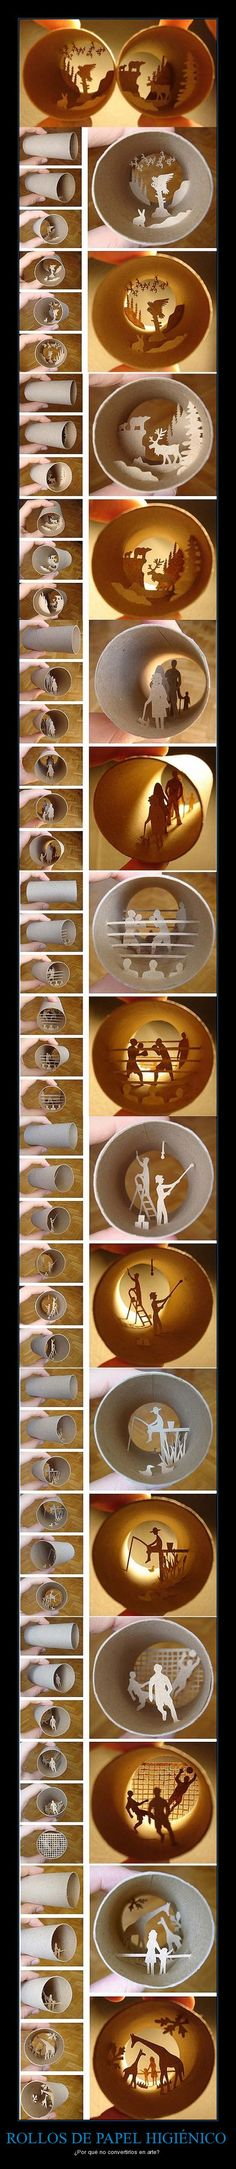 Toilet paper / paper towel rolls --> art  wow!